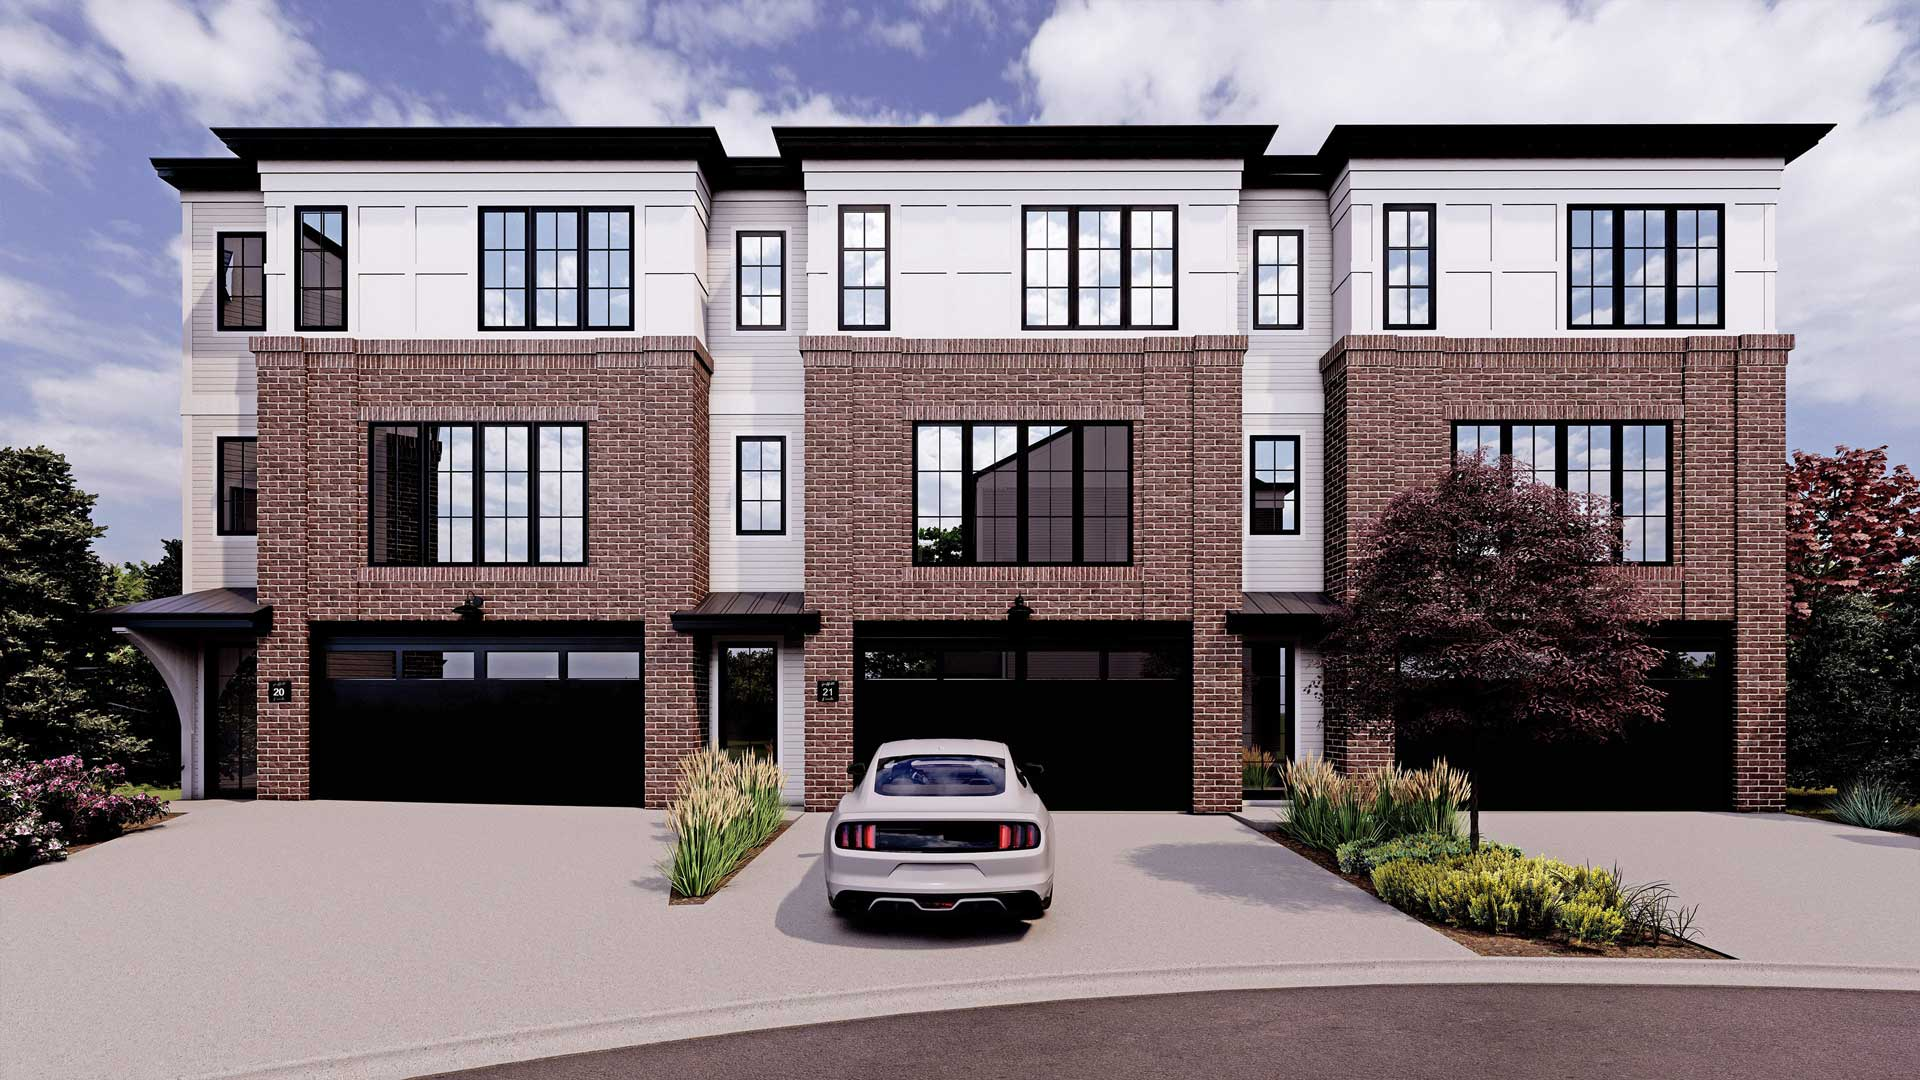 New Townhome Model in Griffith Pointe at Discovery Ridge the Rileyby RareBuilt Homes. Front Exterior Rendering. Brownstone and modern farmhouse.